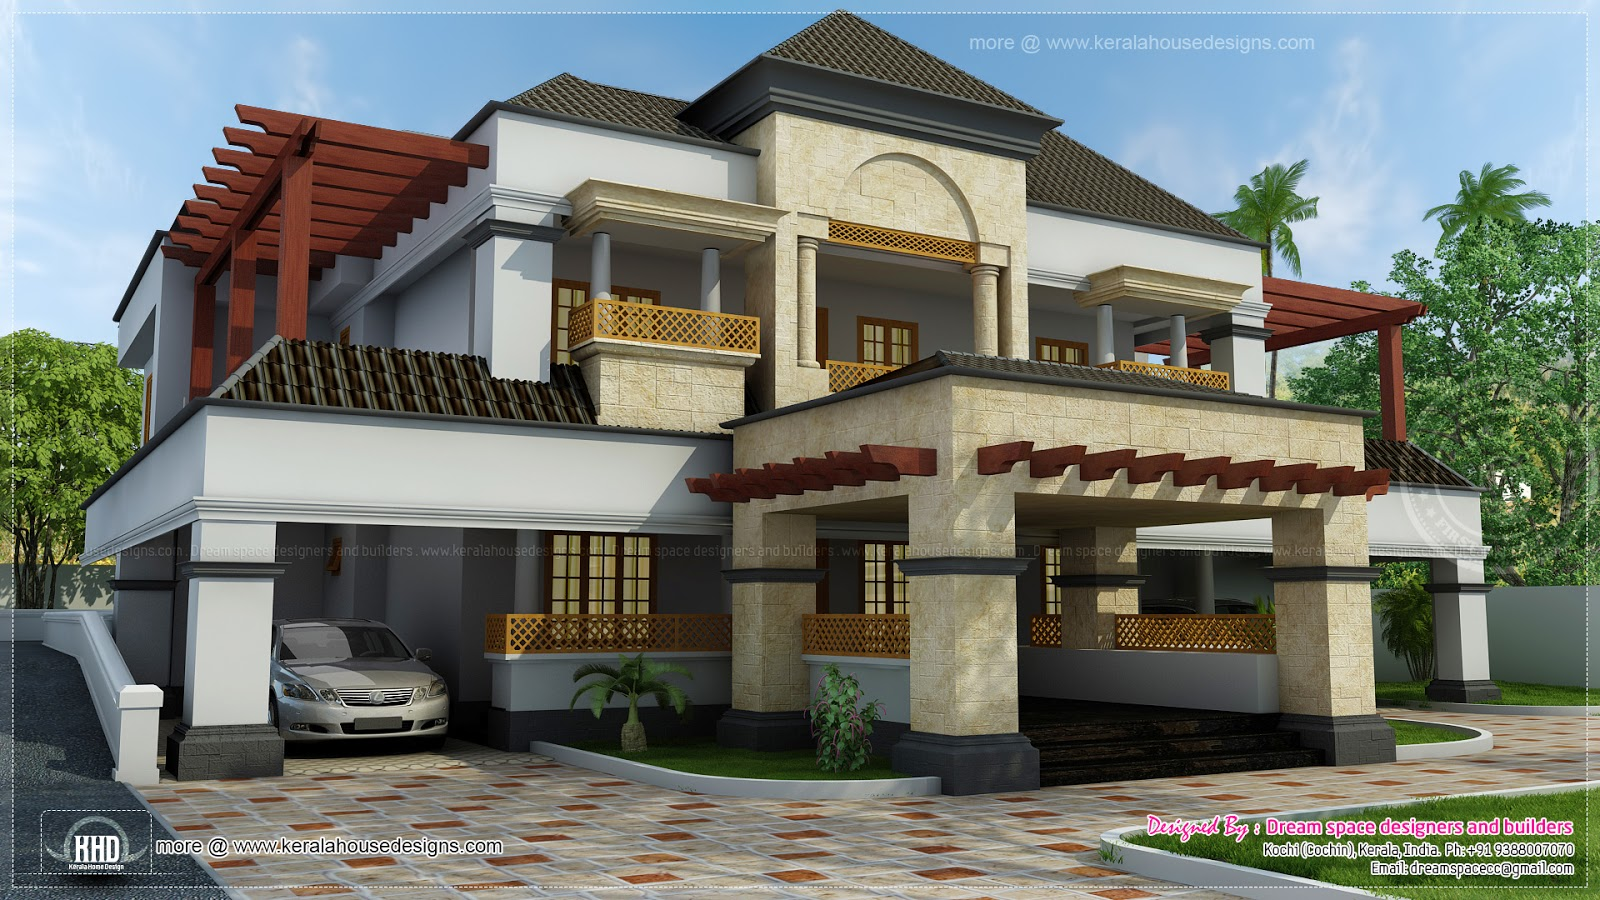 ... fusion mix with Arabic style home - Kerala home design and floor plans